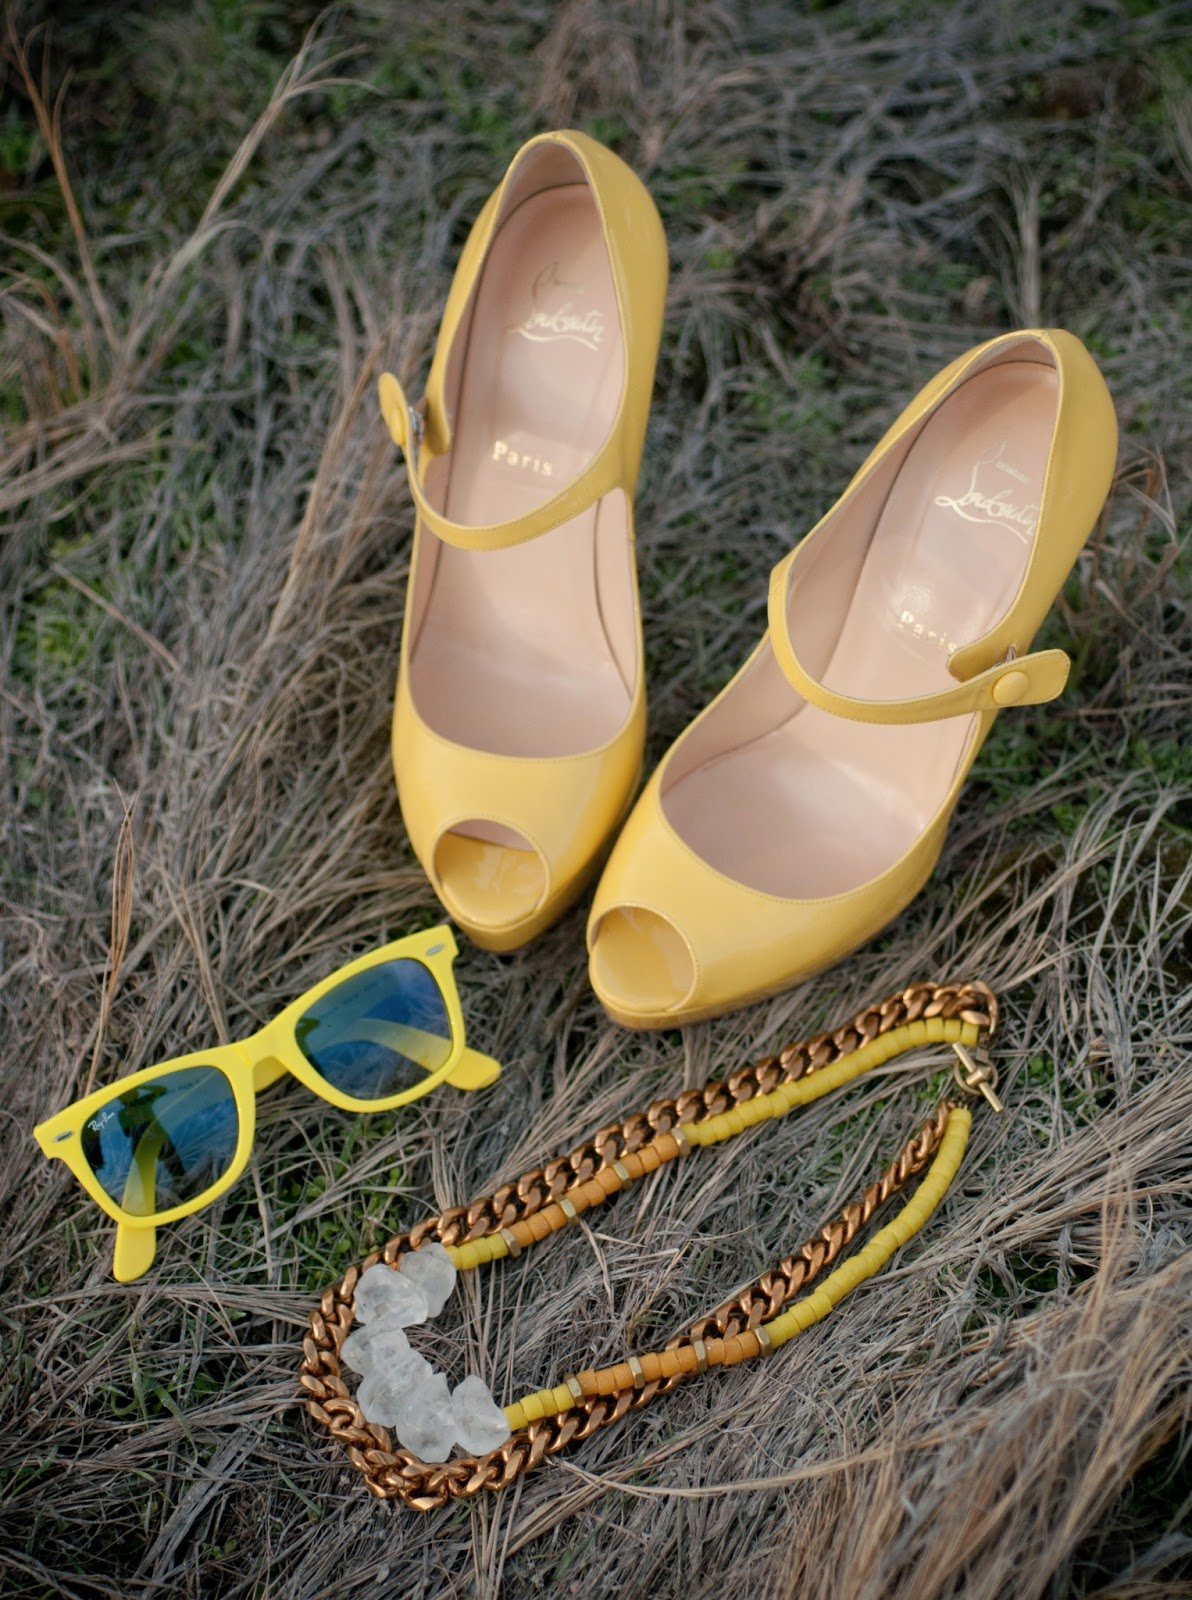 fashion blog, fashion blogger, style blog, style blogger, mens fashion, mens fashion blog, mens style, mens style blog, womens style blog, anthropologie ootd blog, anthropologie ootd, anthropologie, ootd, mens ootd, womens ootd, christain louboutin, rayban, erica lauren designs, ann taylor, loft, floral